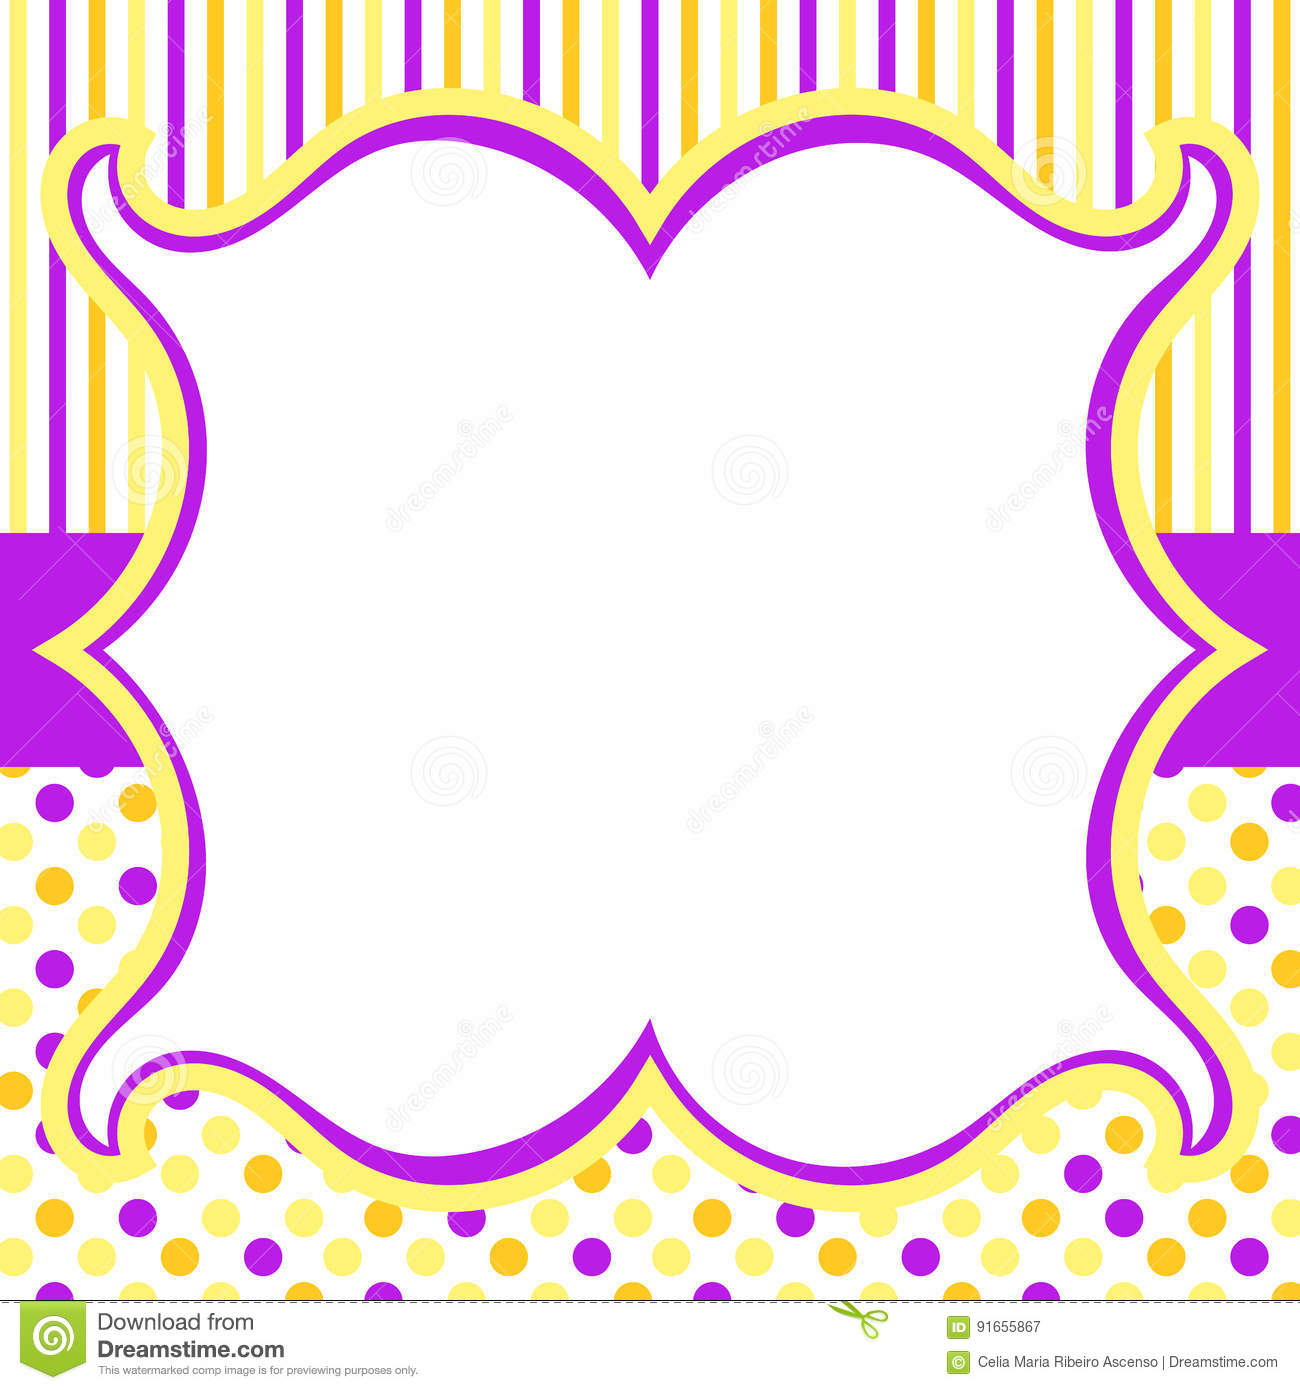 Stripes and dots invitation card